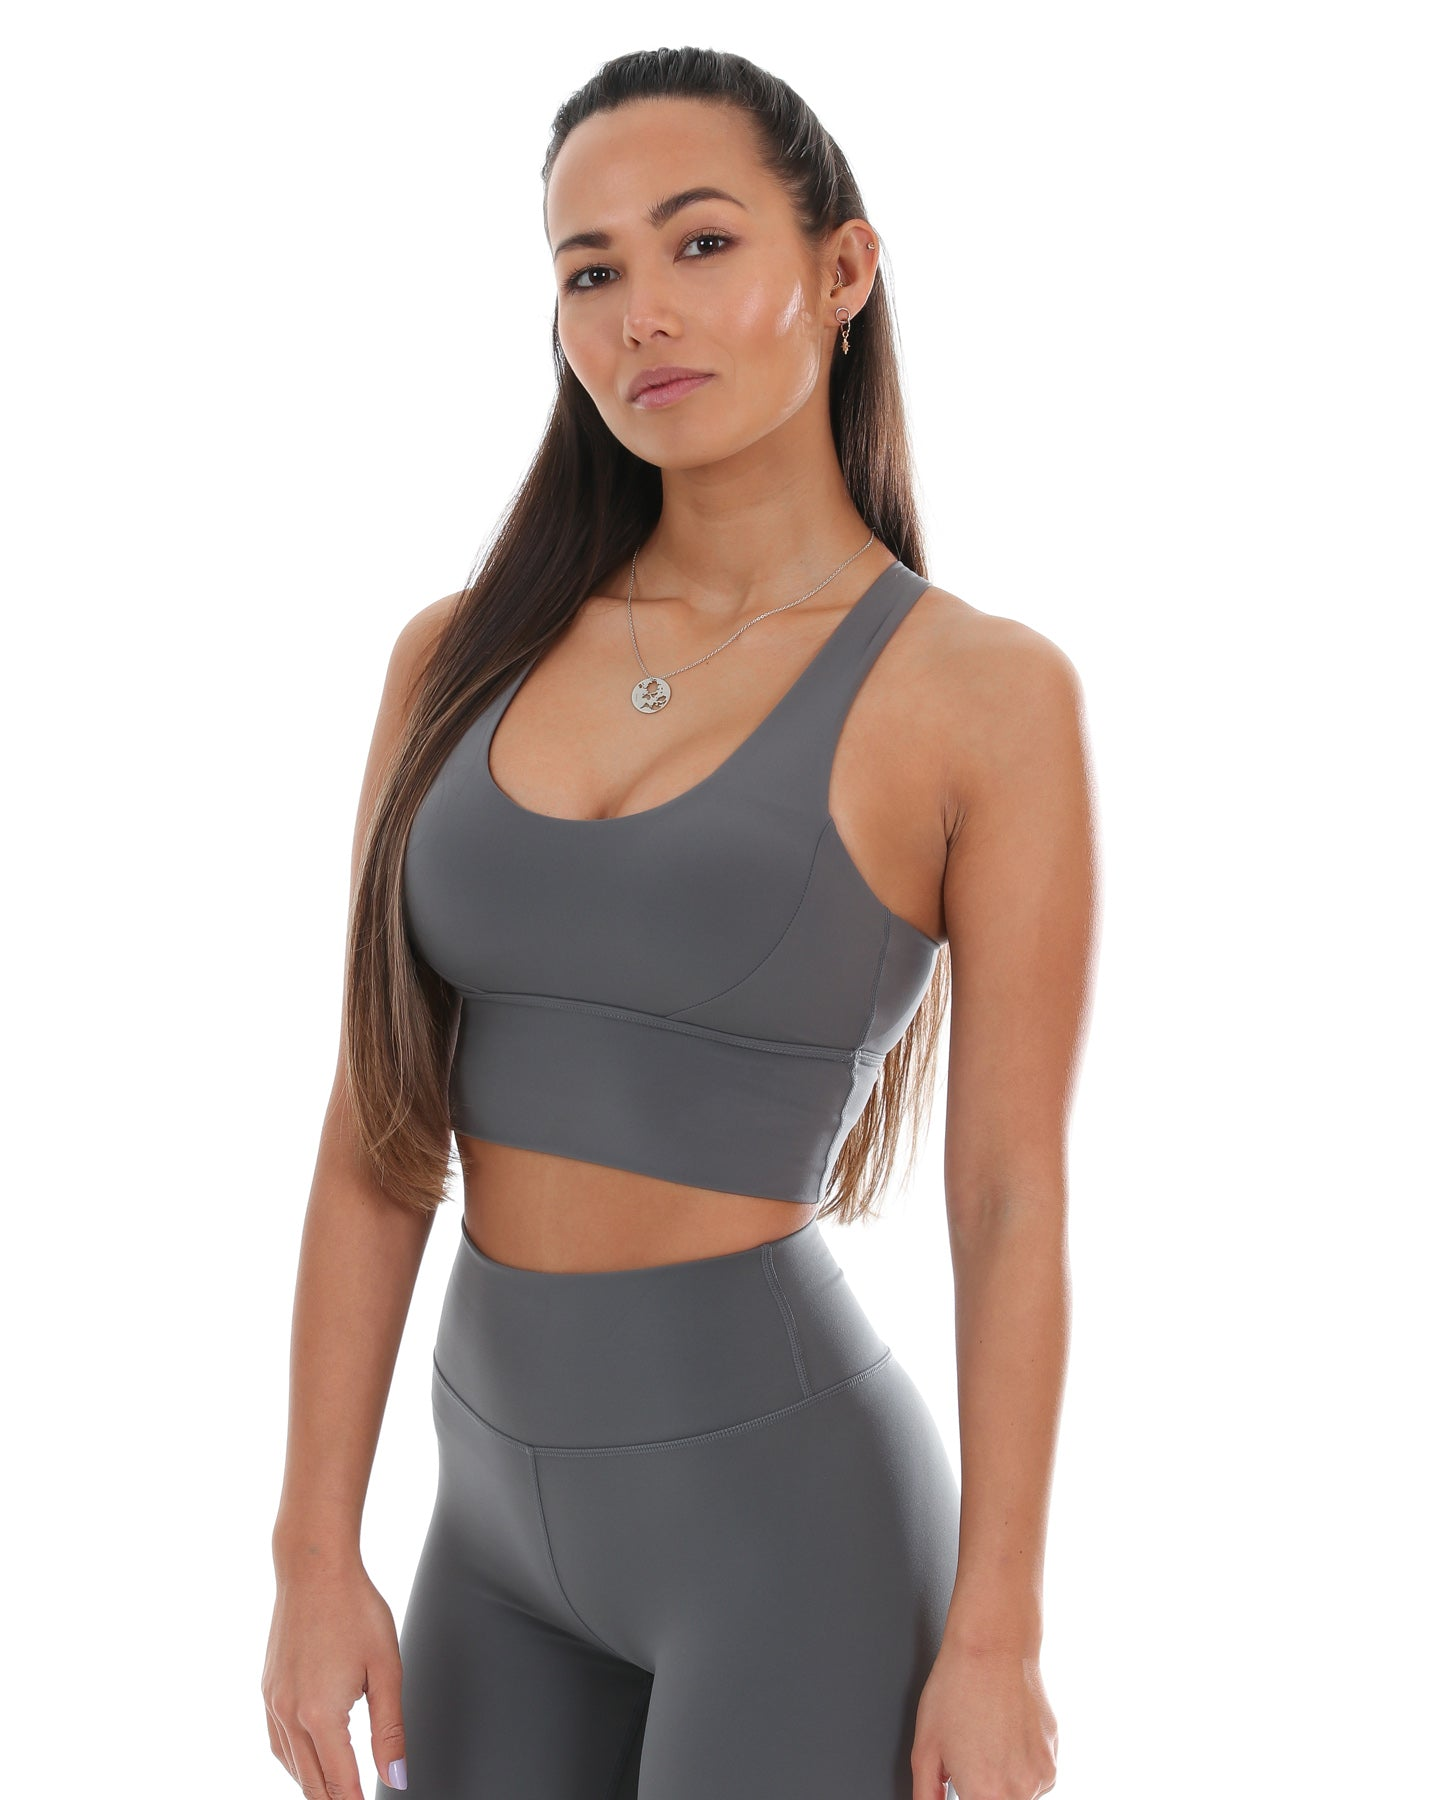 Aura Bra - Cloud Grey